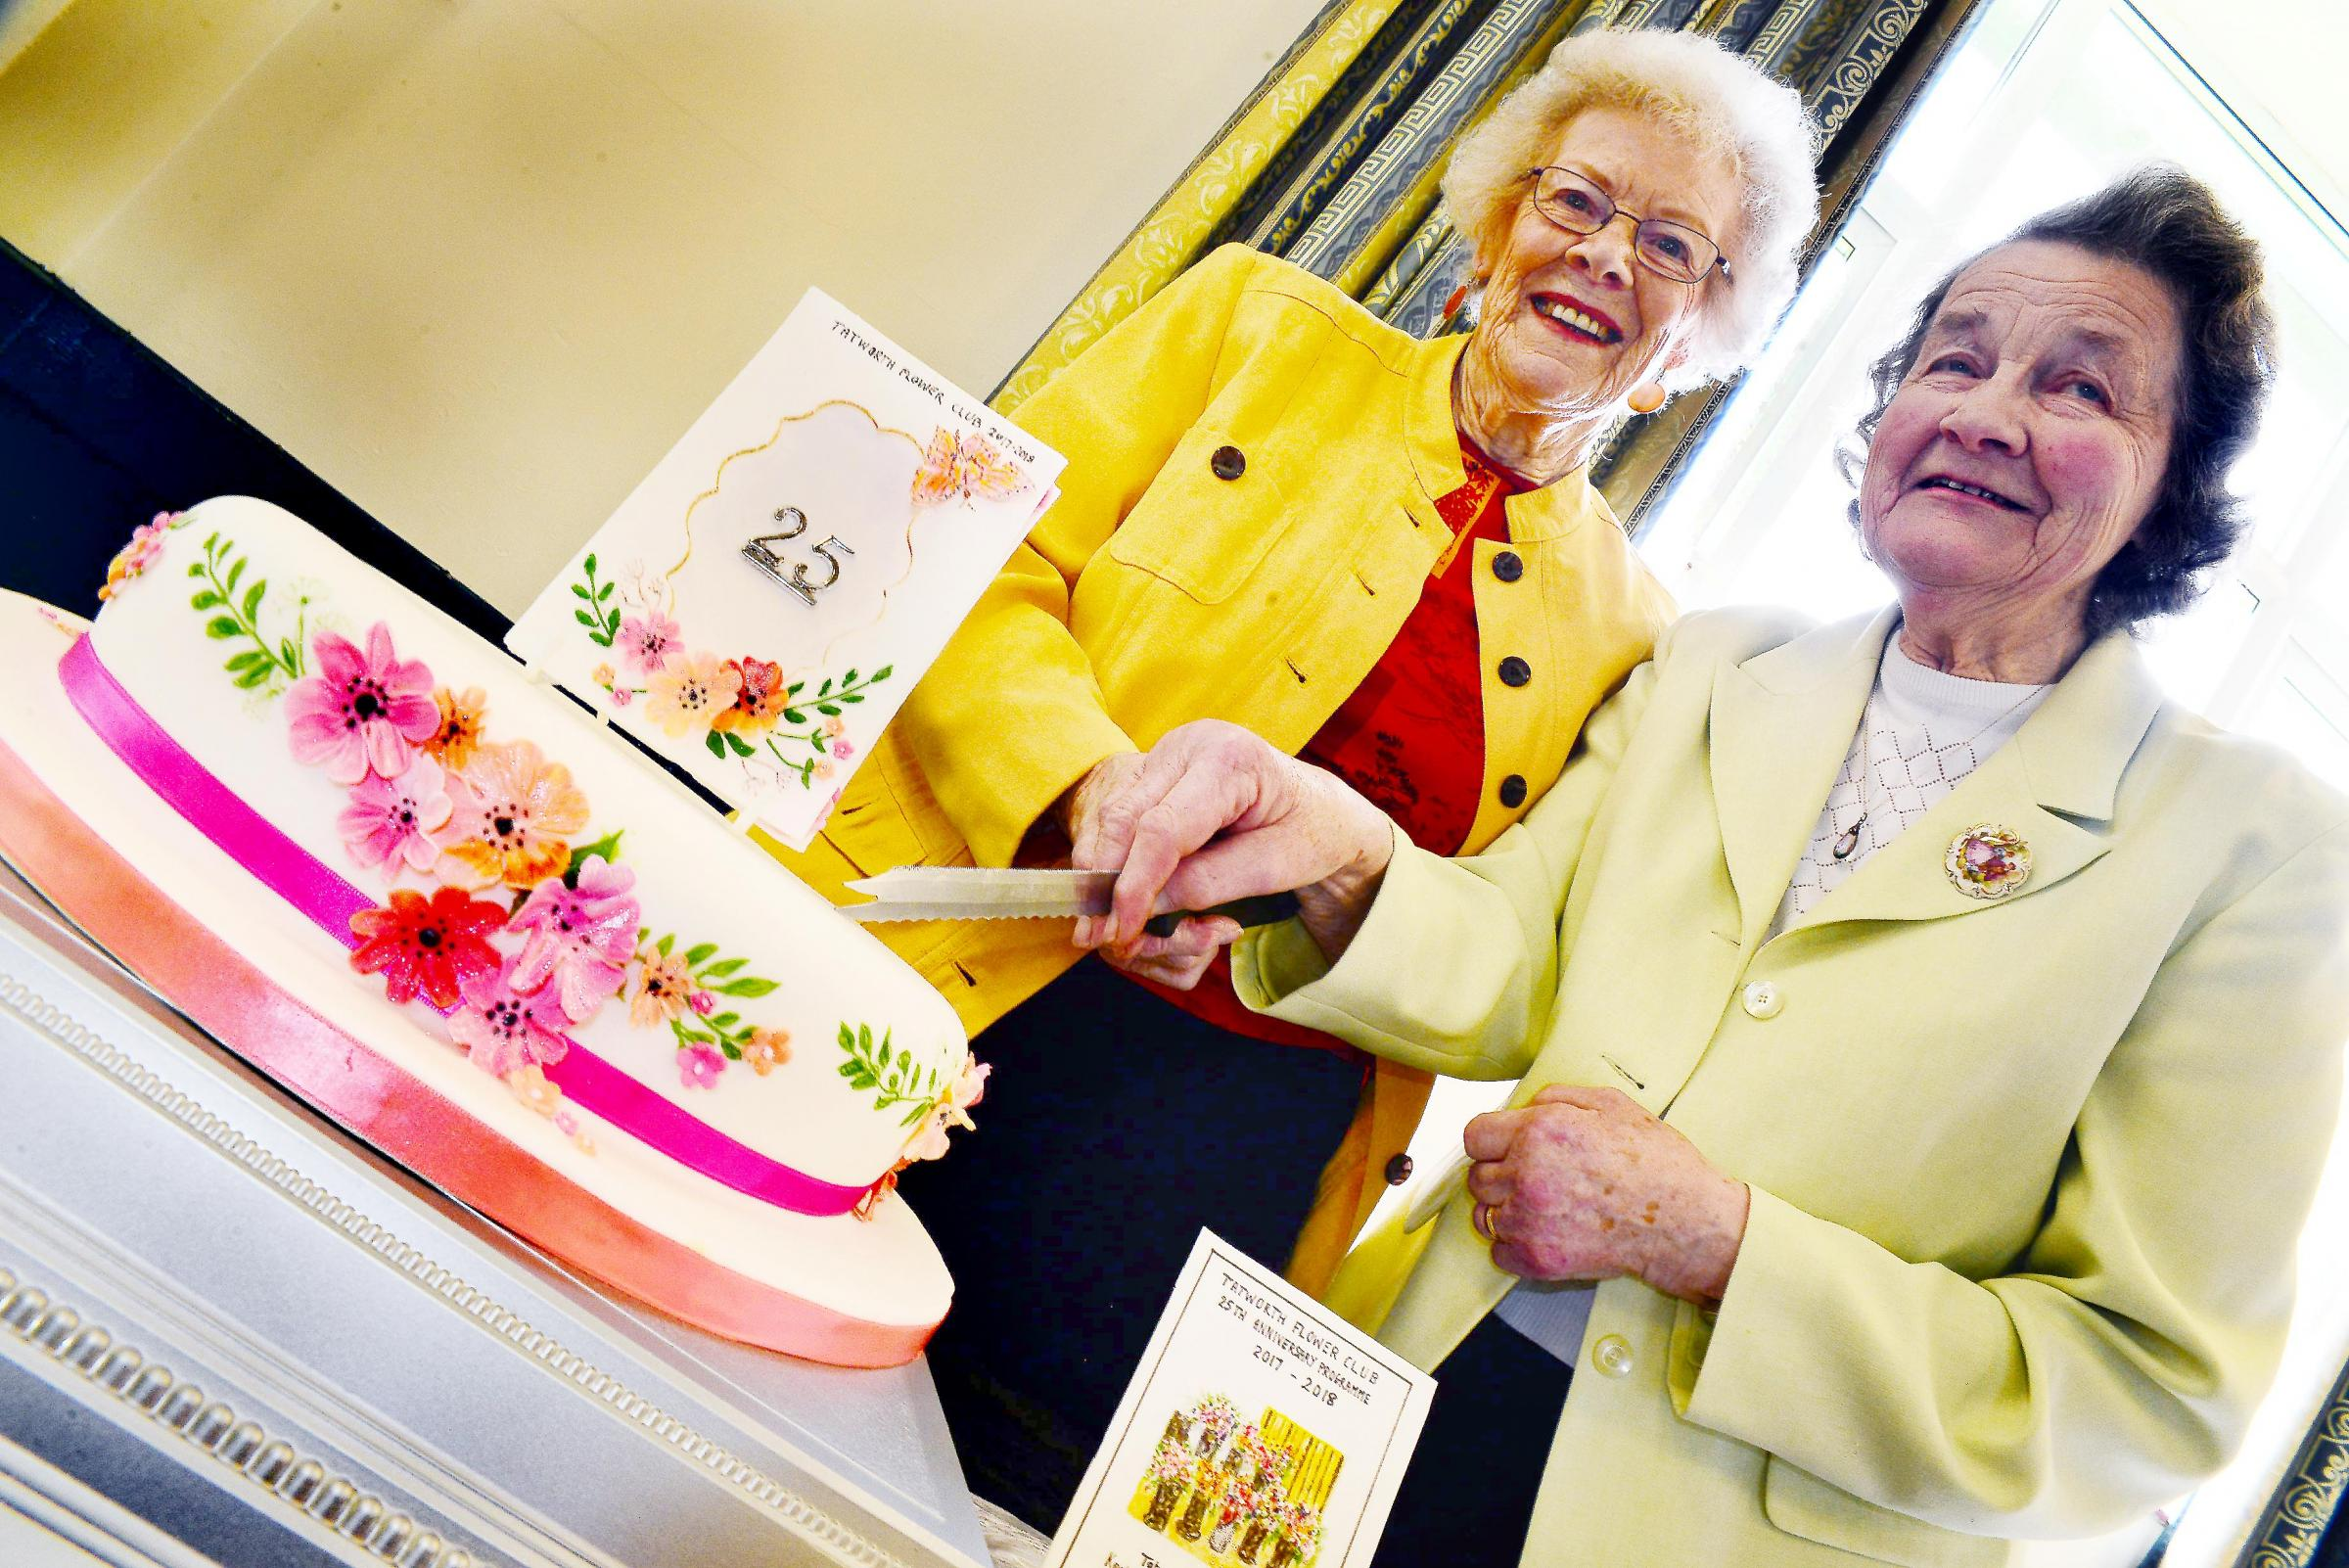 CUT THE CAKE: Long-serving honorary members Rosemary Walton and Rosalie Palmer mark the day